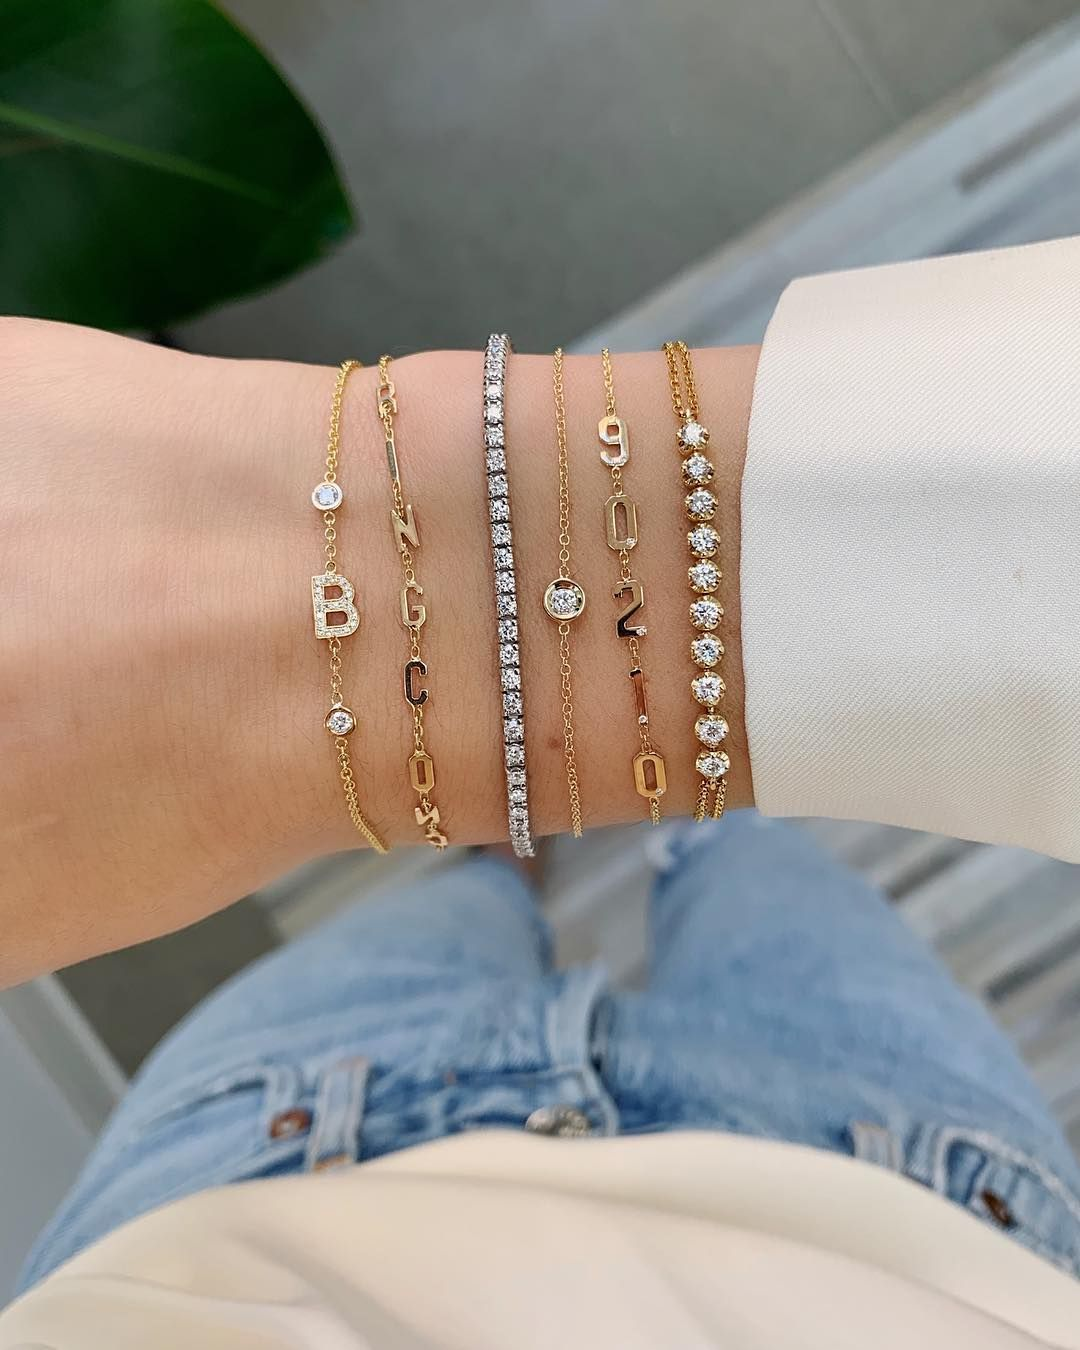 Now S The Time To Build Your Wrist Stack Our Biggest Sale Of The Season Is Happening Now Btw Tennis Bra Wrist Stacks Tennis Bracelet Diamond Bracelets